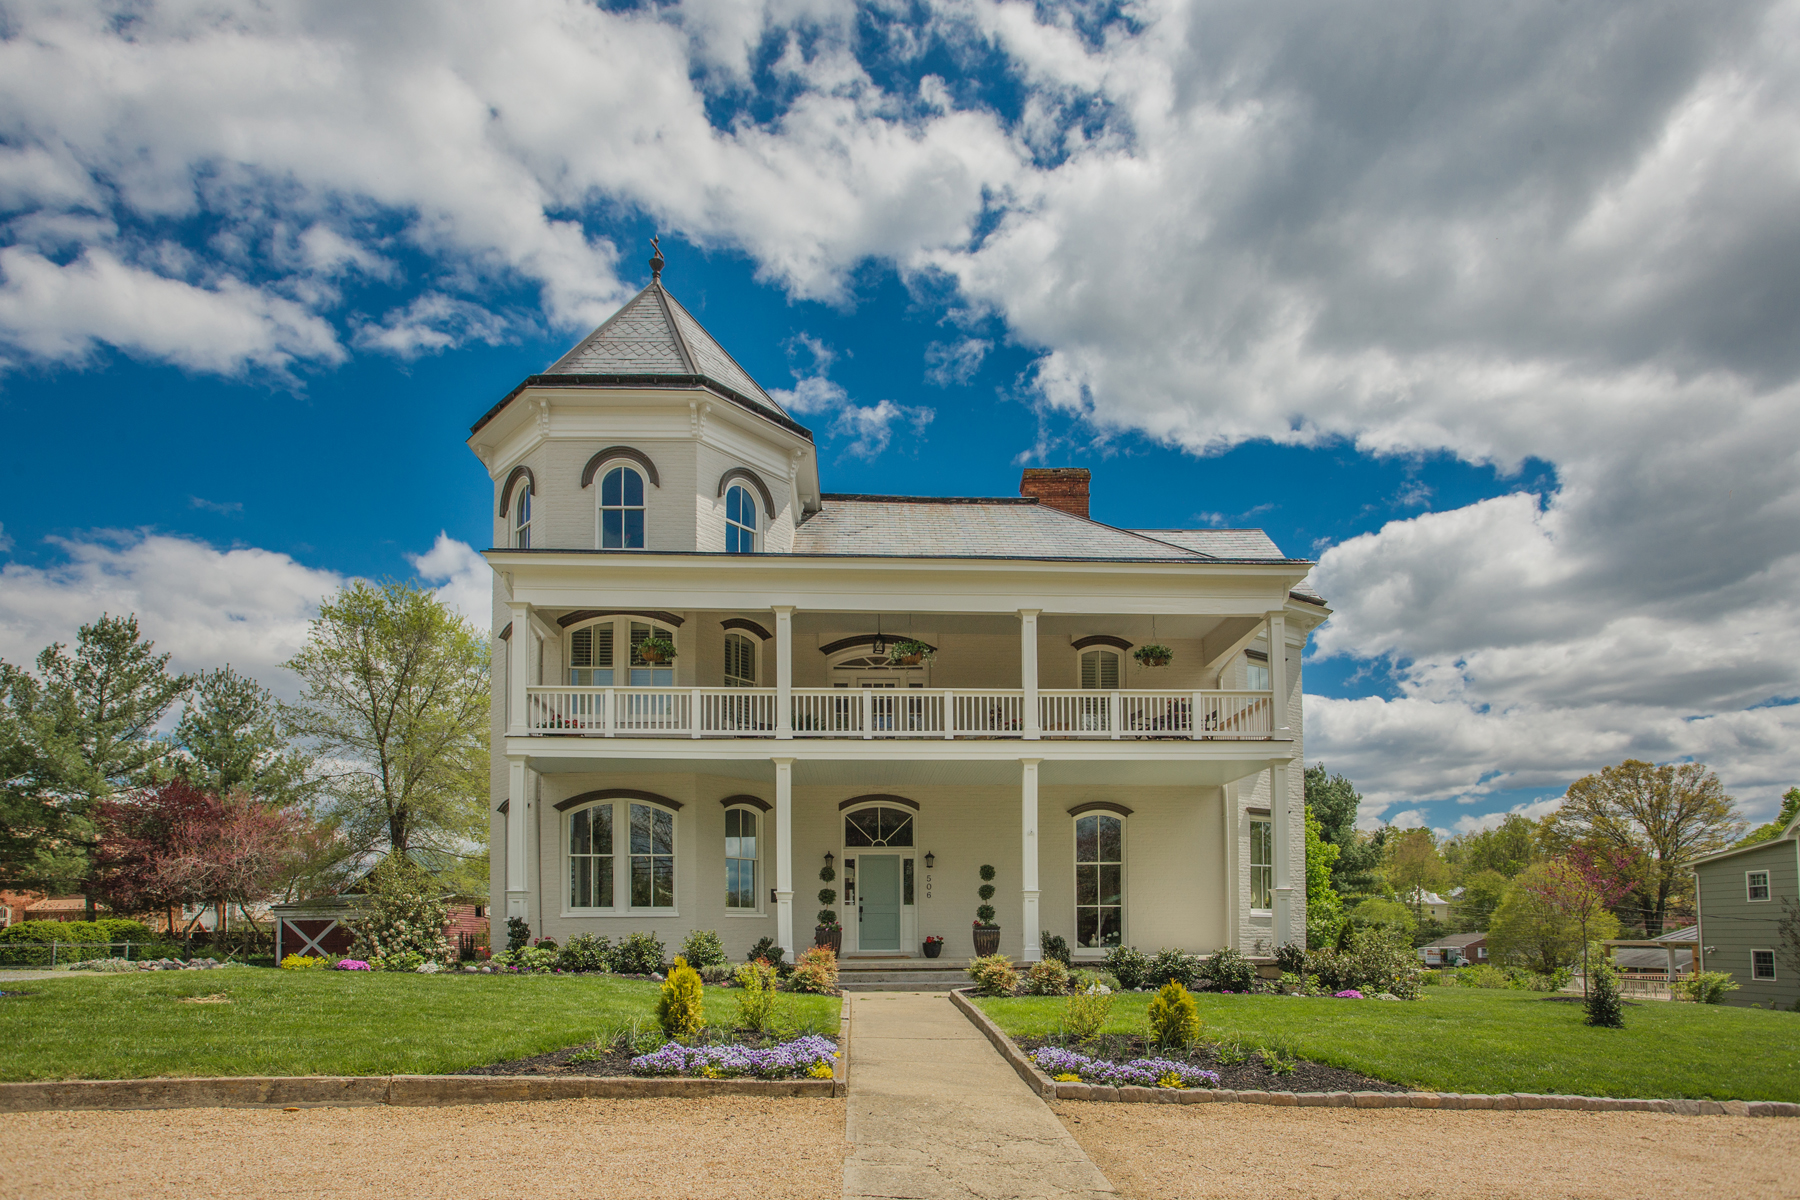 Grace House Bed and Breakfast 506 S Main St, Lexington